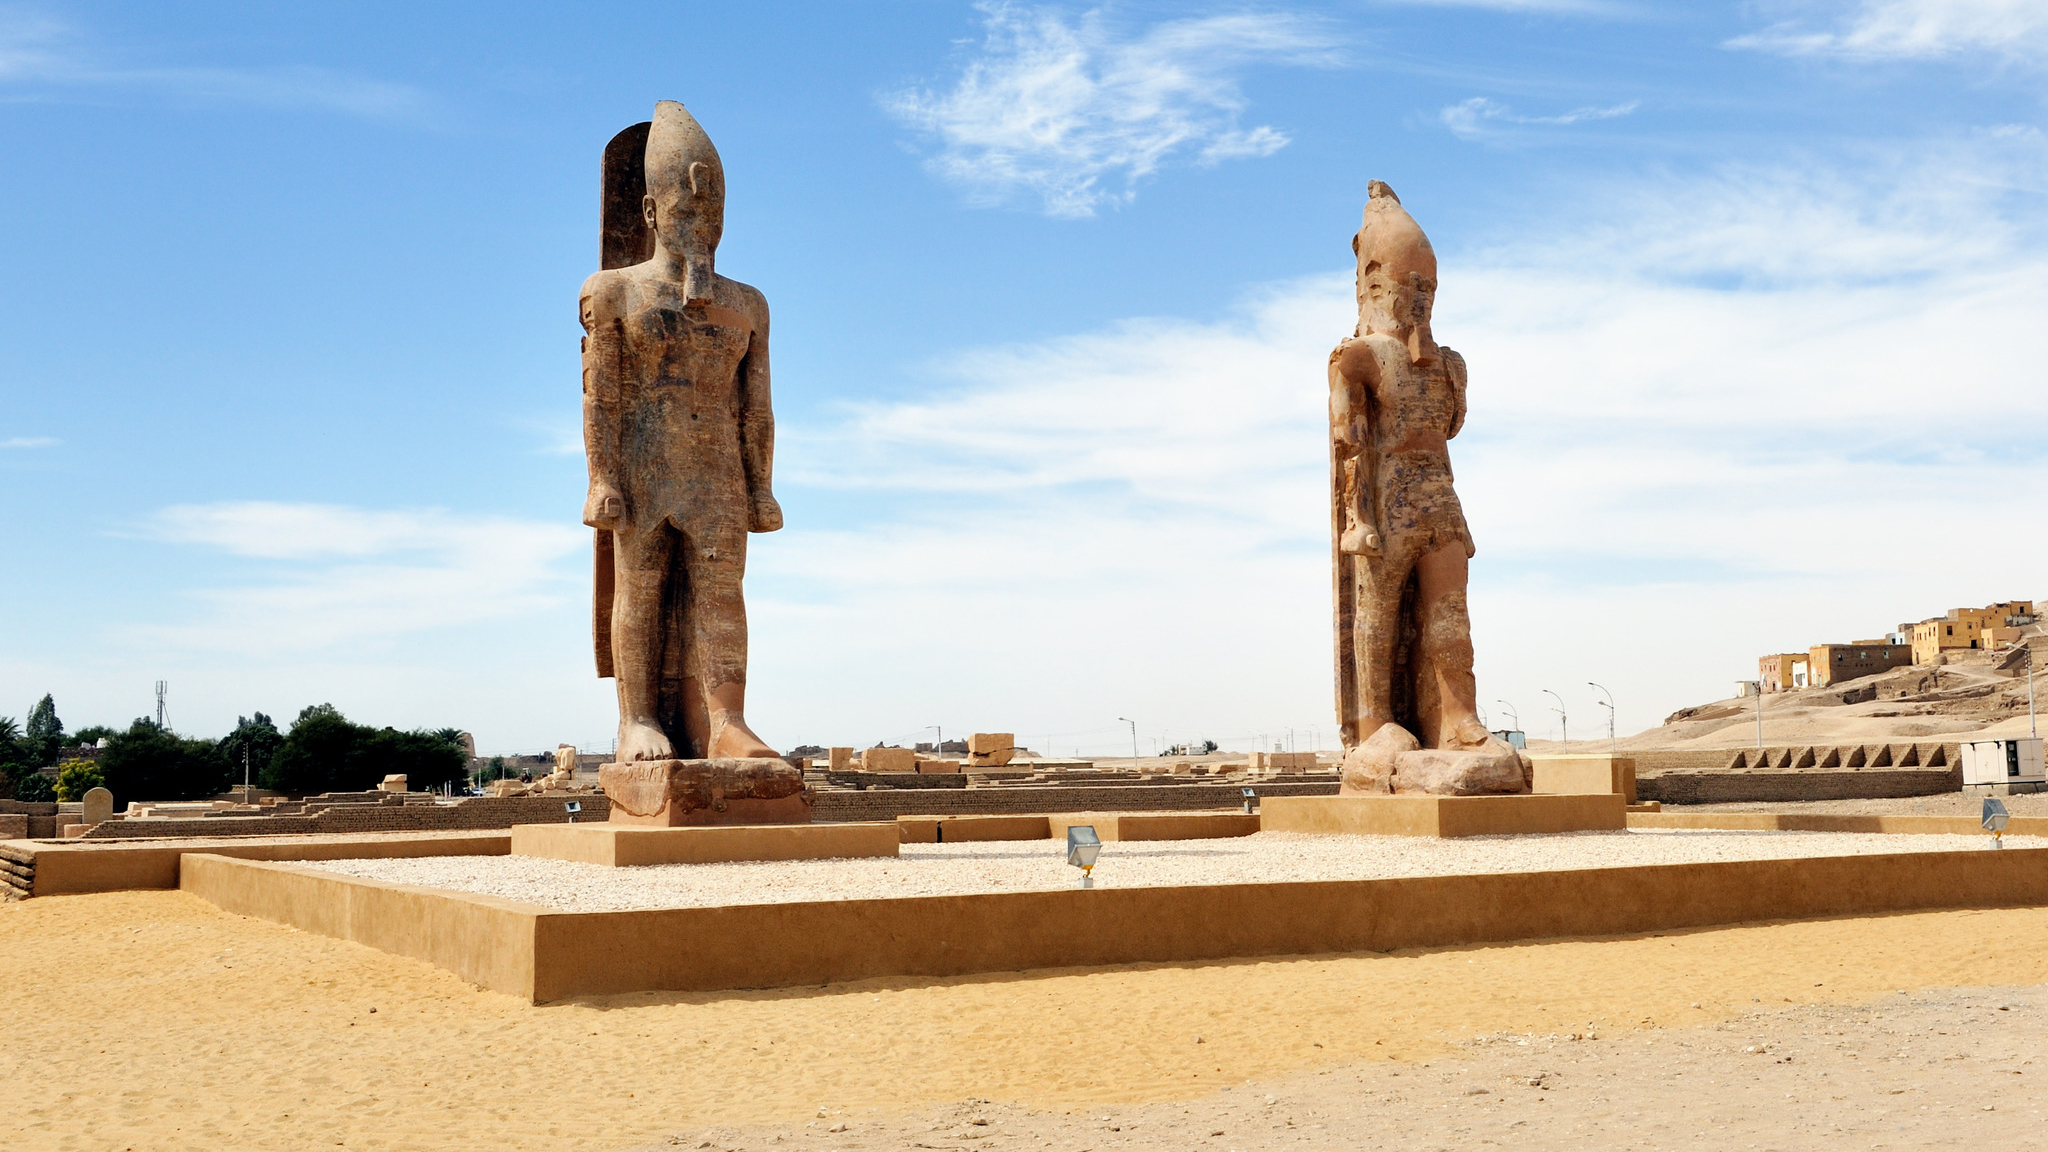 Colossi of Memnon - Cairo, Luxor & Aswan Tour Package - Trips in Egypt